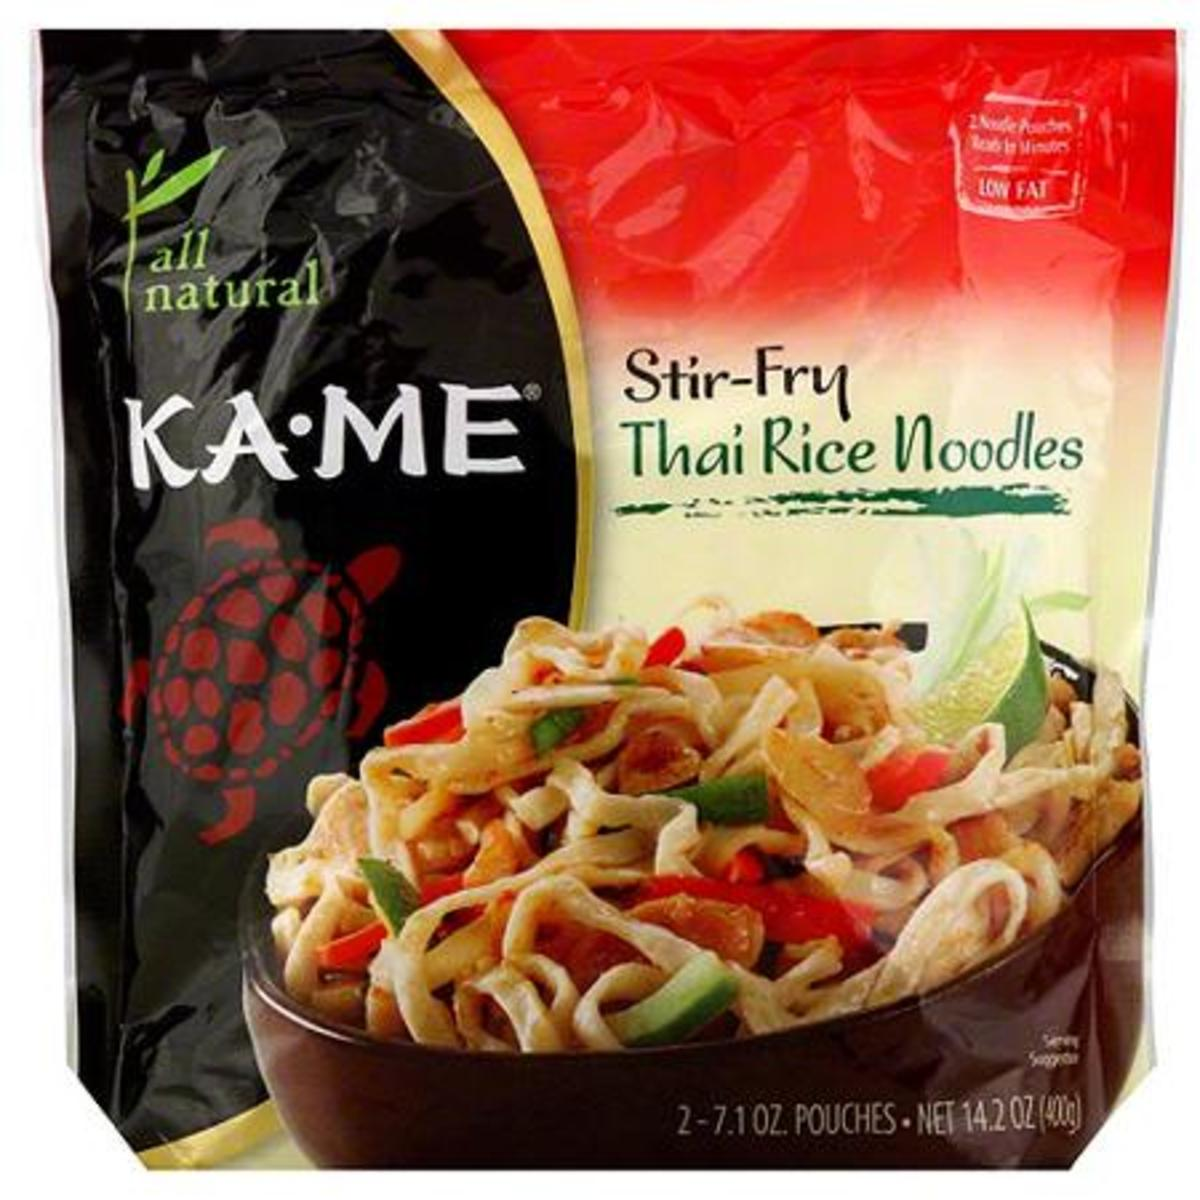 This stir-fry rice noodle is diabetic friendly because it is low on the glycemic index.